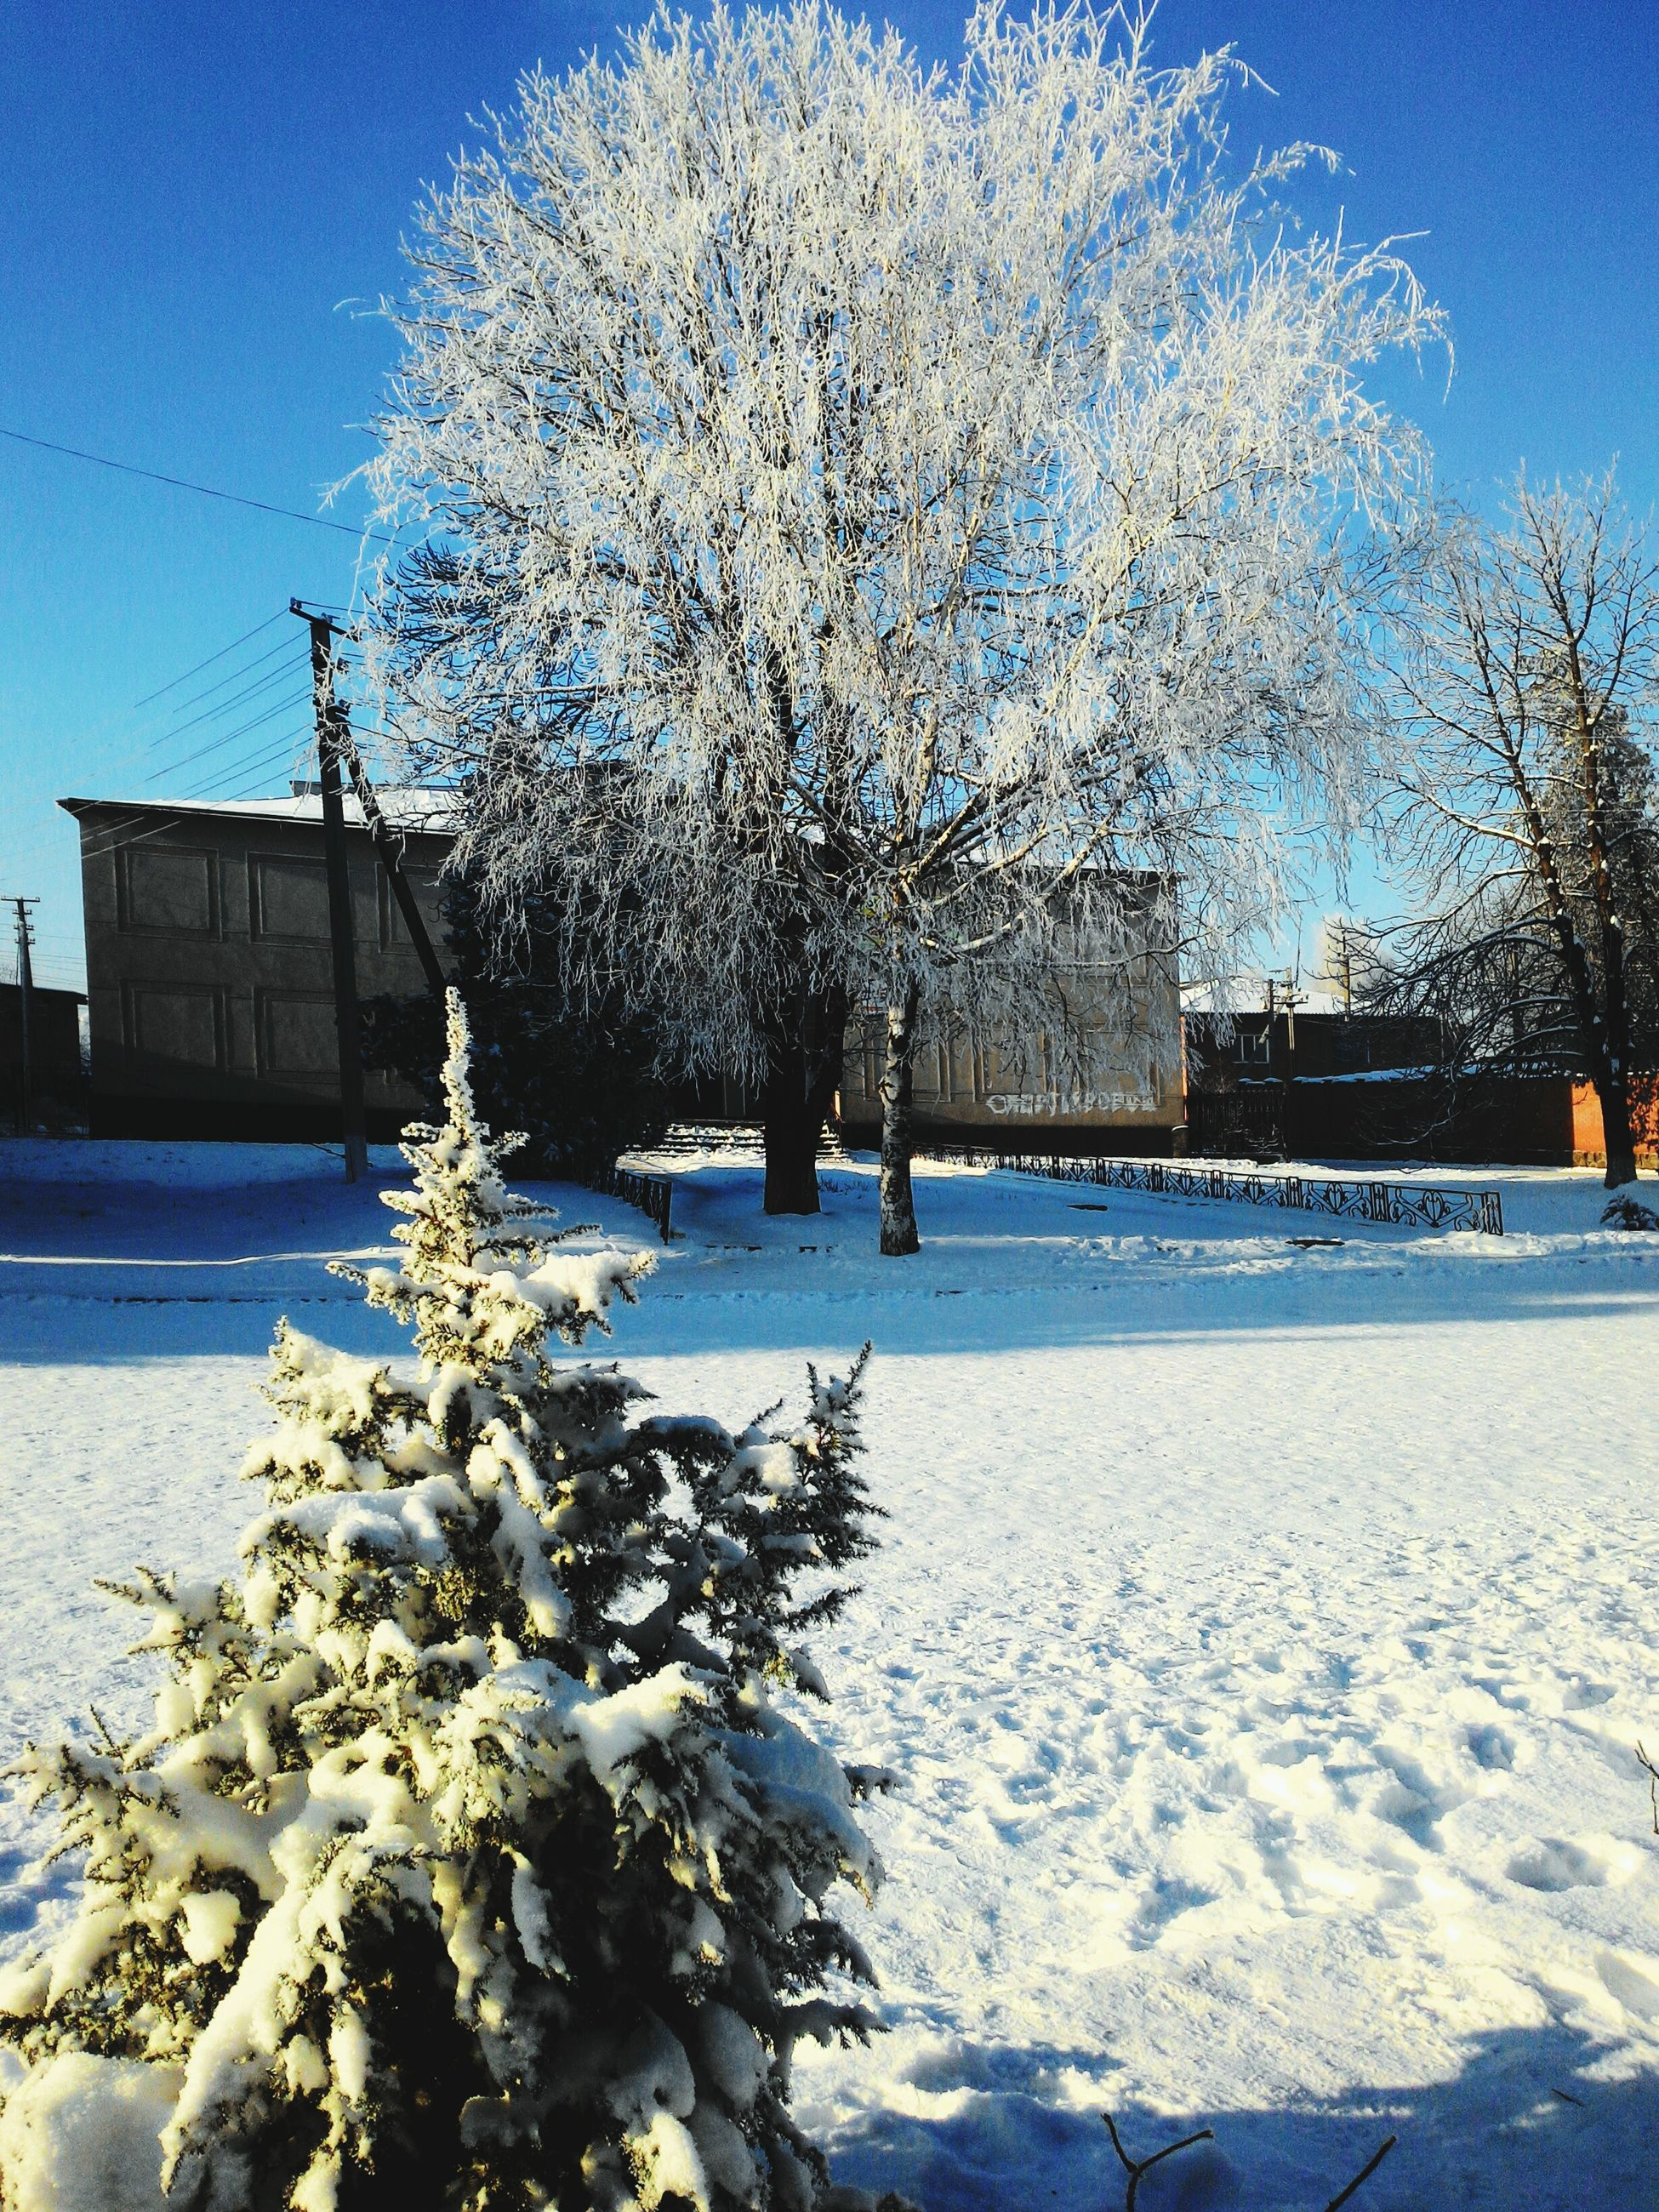 snow, blue, tree, winter, cold temperature, building exterior, built structure, sunlight, architecture, nature, bare tree, season, house, sky, clear sky, white color, tranquility, tranquil scene, beauty in nature, frozen